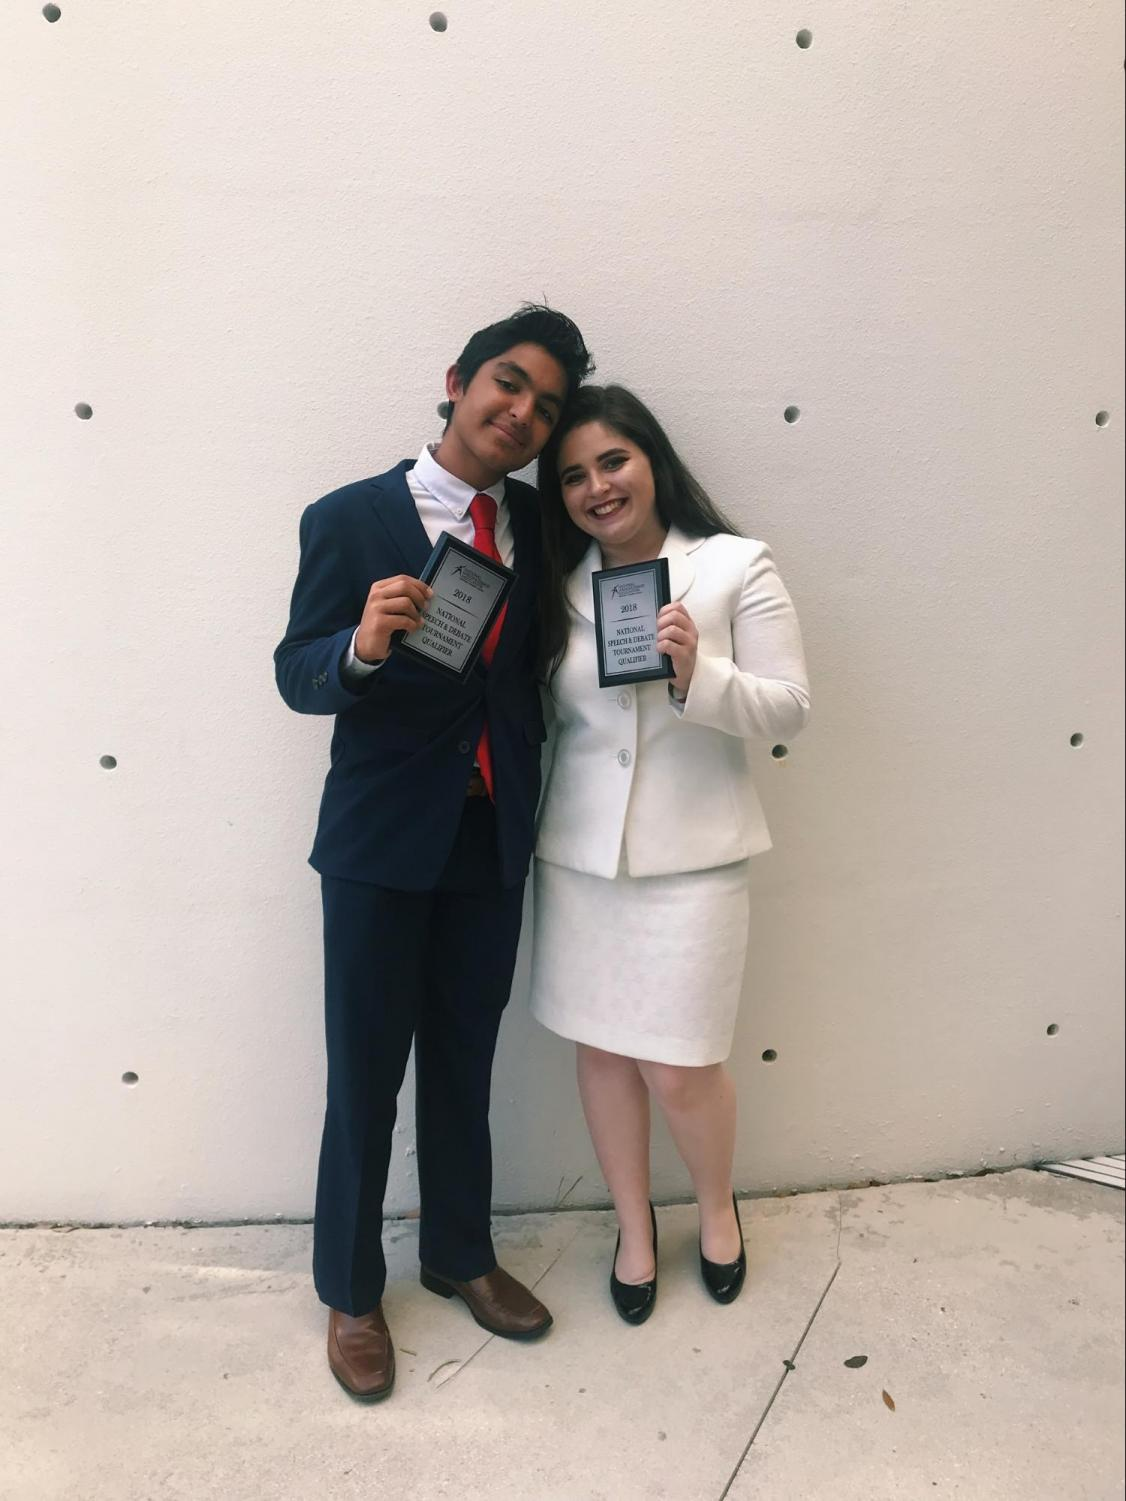 Communications freshman Nirmit Chandan poses with communications senior Maya Levkovitz moments after receiving their awards for Congressional Debate. Both Chandan and Levkovitz qualified for the 2018 National Speech and Debate Tournament on June 17 through 22 in Fort Lauderdale.